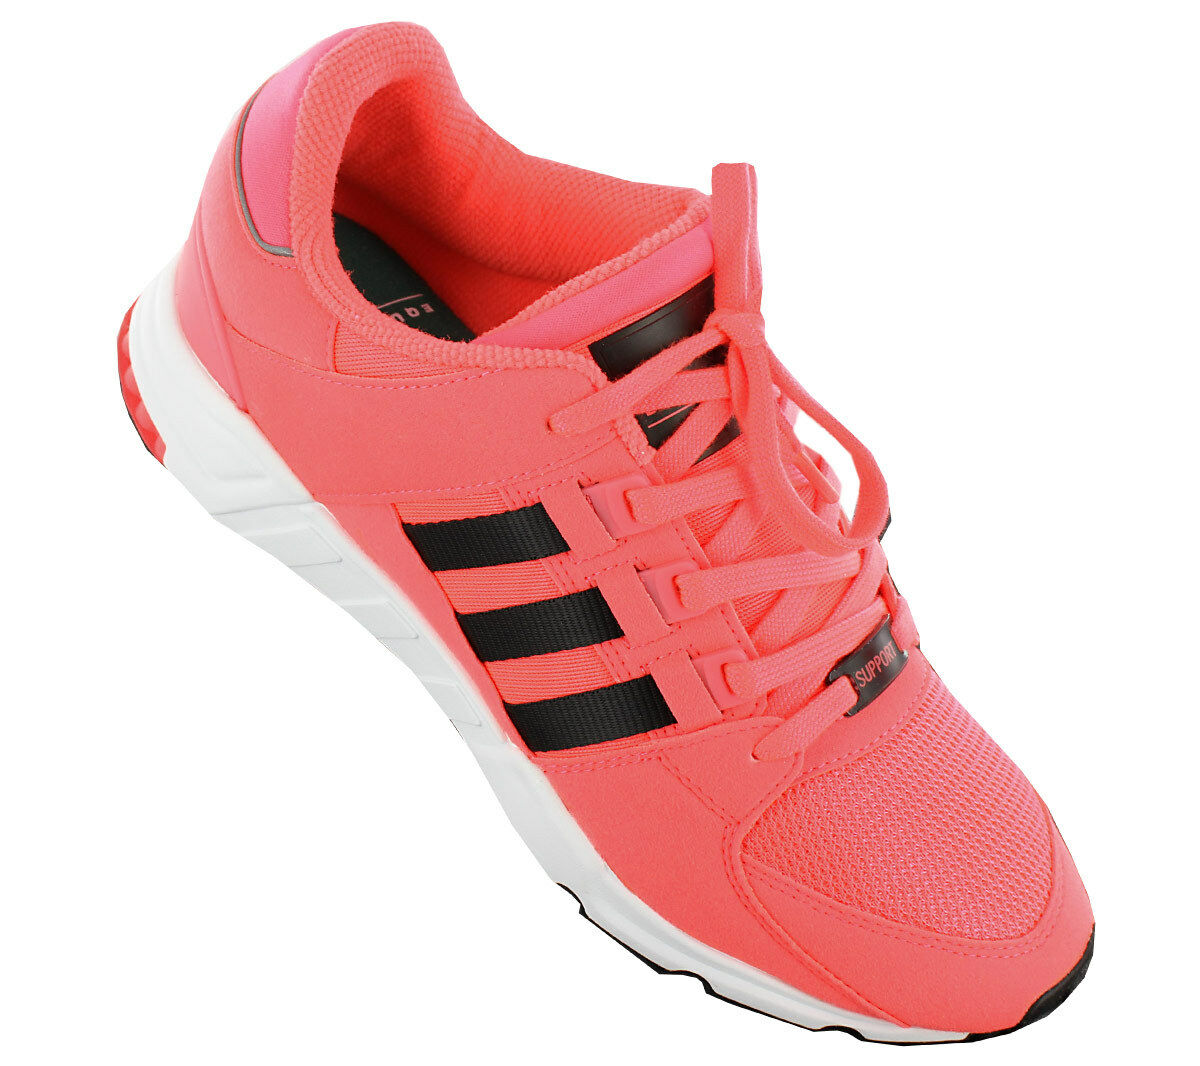 NEW adidas adidas adidas EQT Support RF BB1321 Men''s shoes Trainers Sneakers SALE 881b14